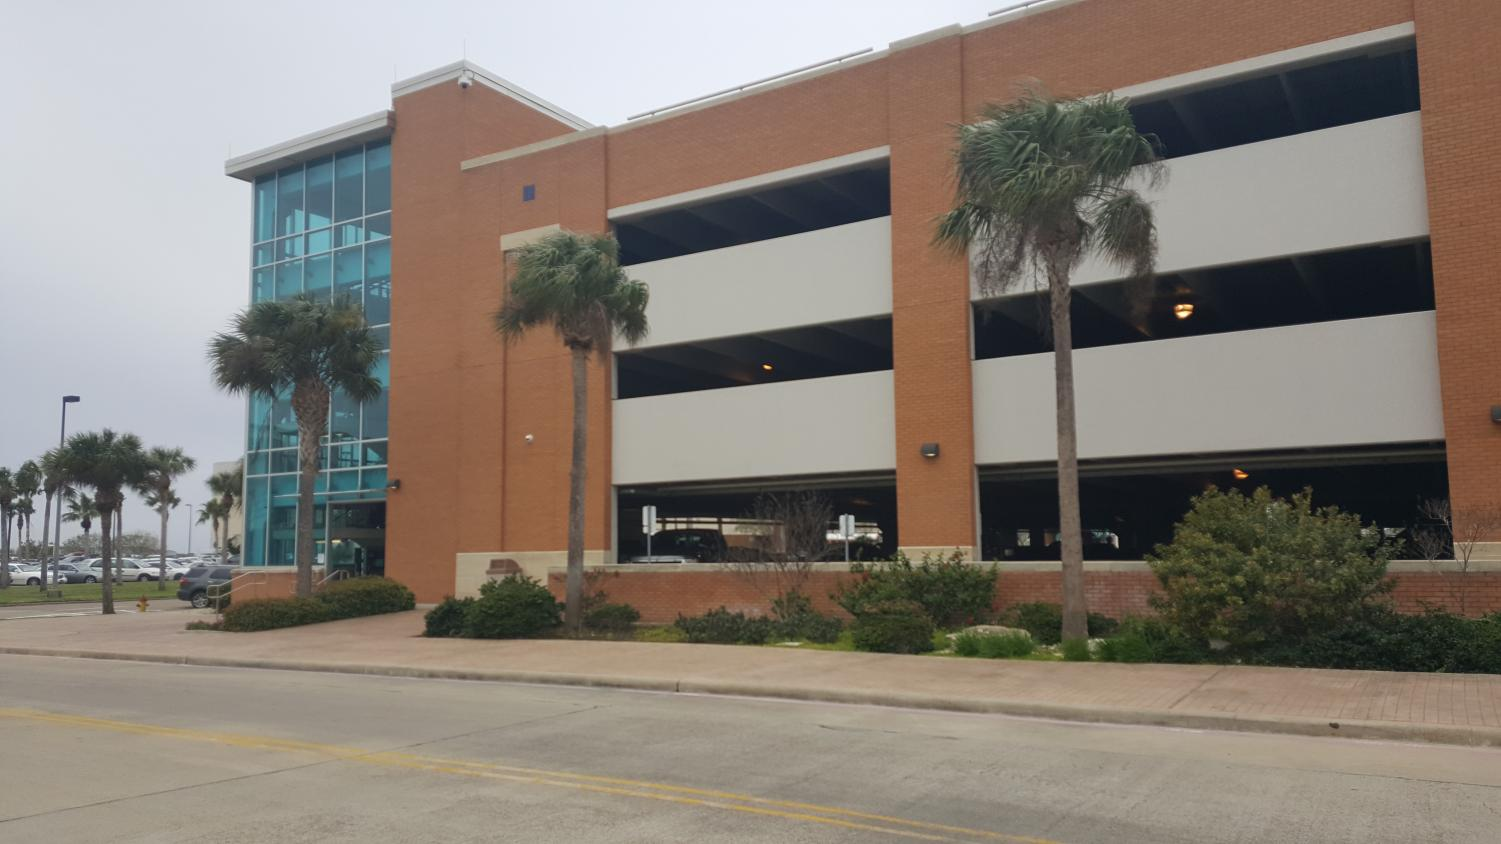 According to the TAMU-CC website, the Bayside Parking garage boasts 1,205 parking spaces, 32 of which are reserved on a 24/7 basis. Photo by Raul Alonzo Jr./ISLAND WAVES